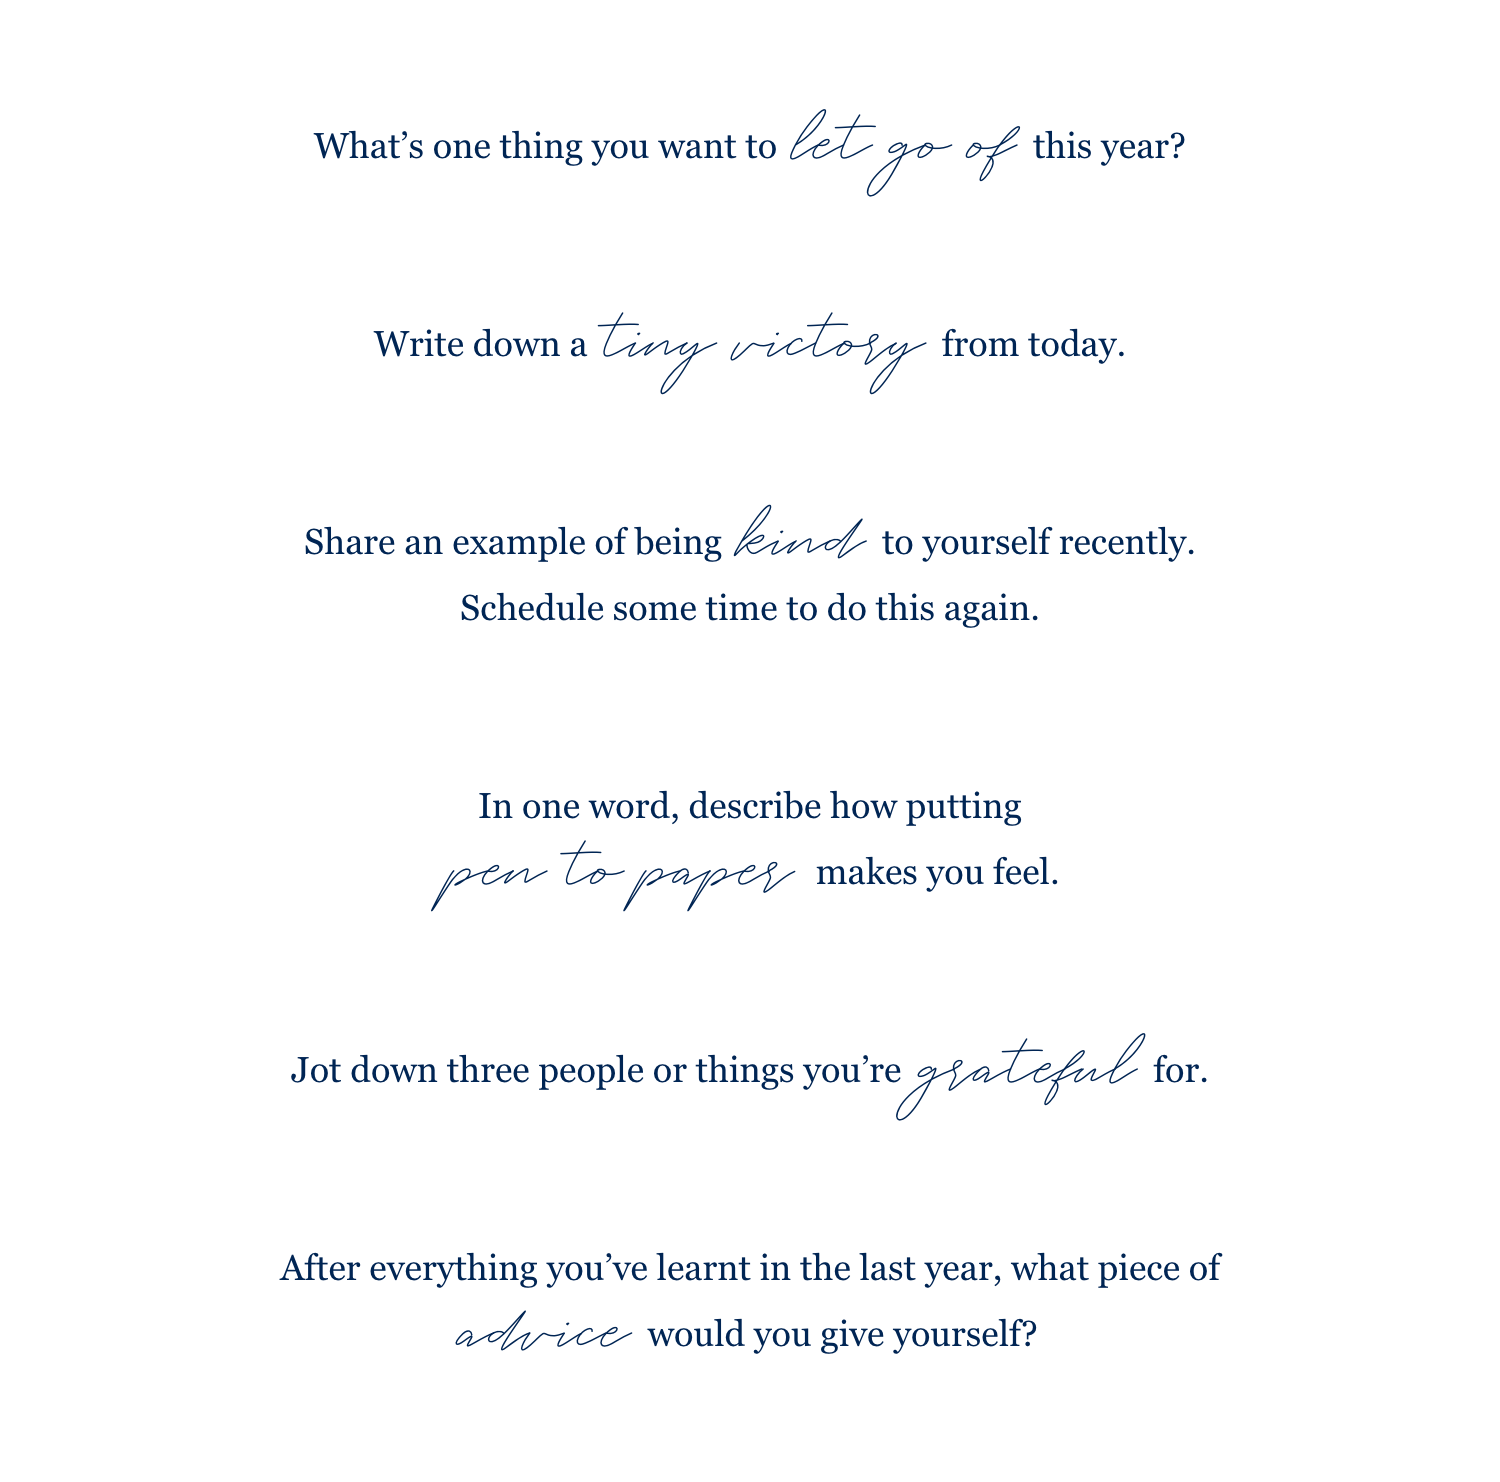 0321_JournalingPrompts_TheFold_Body.png